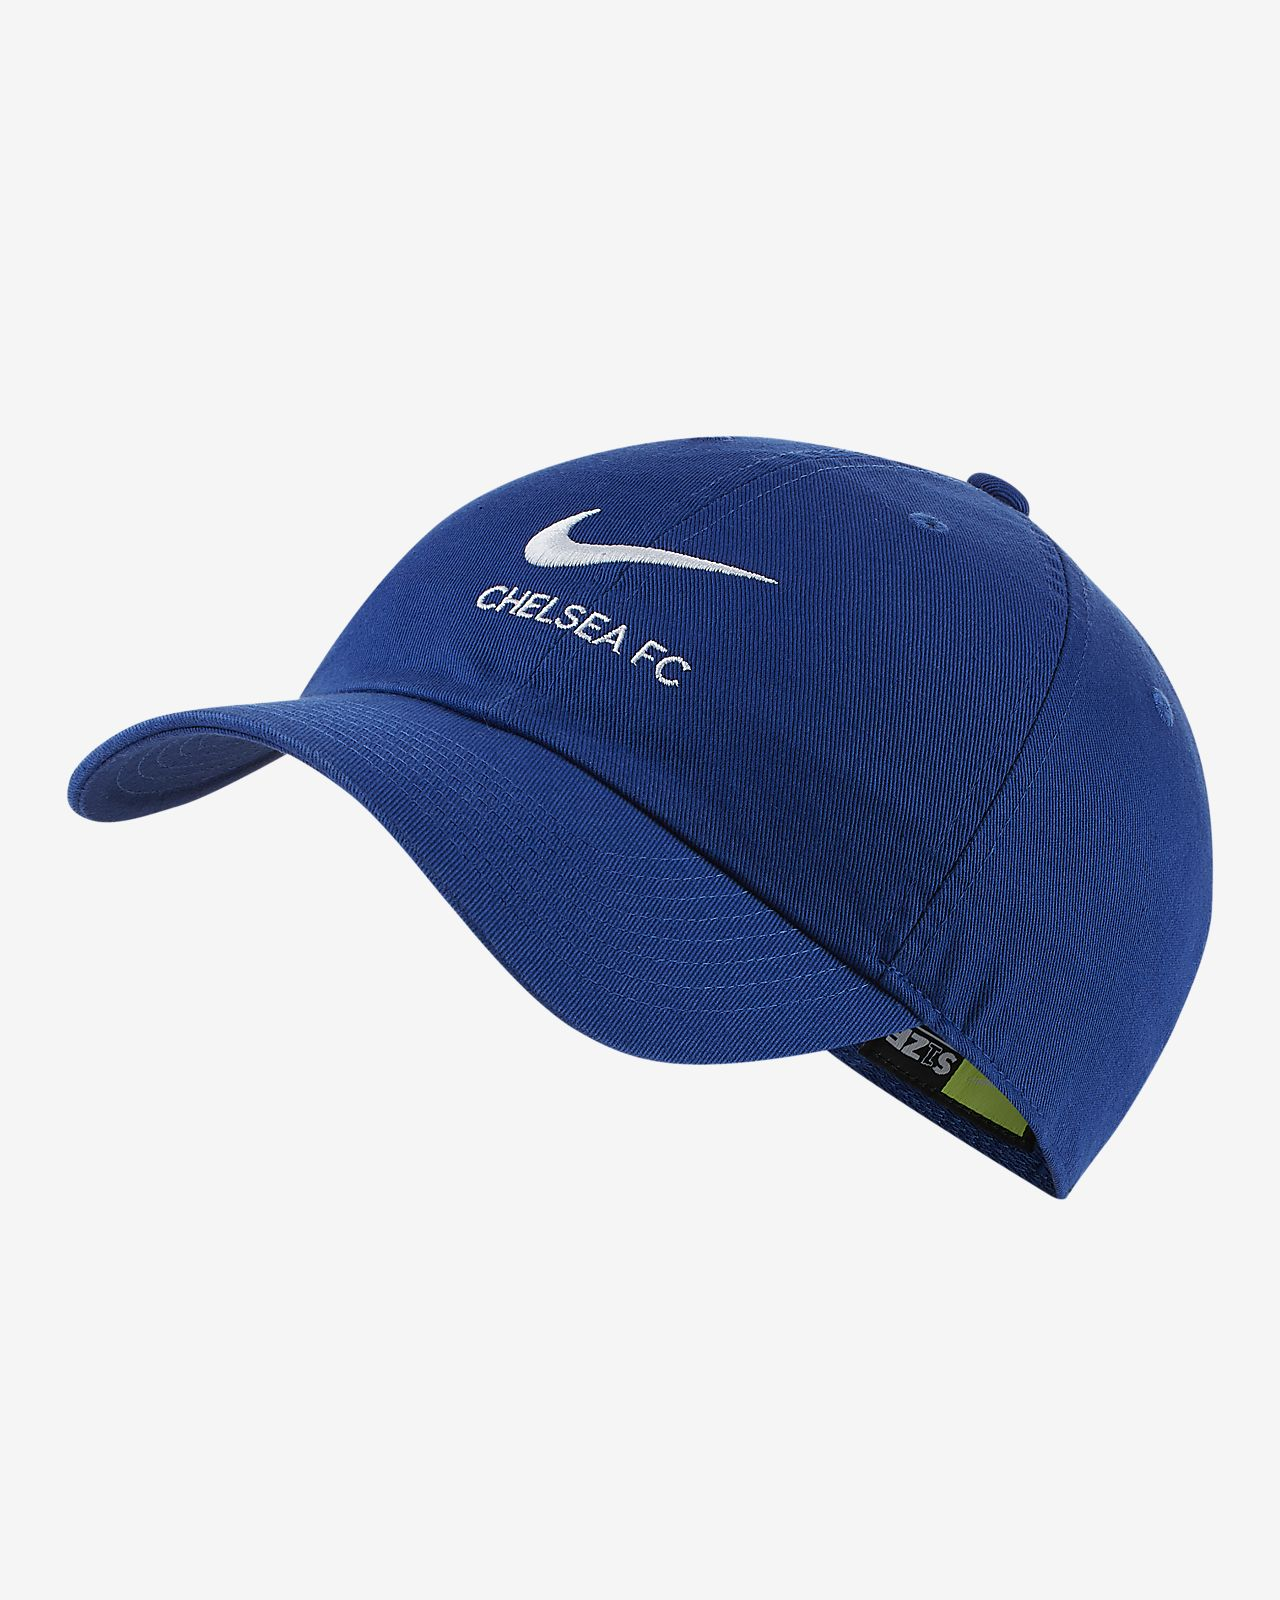 Chelsea FC Heritage86 Adjustable Hat